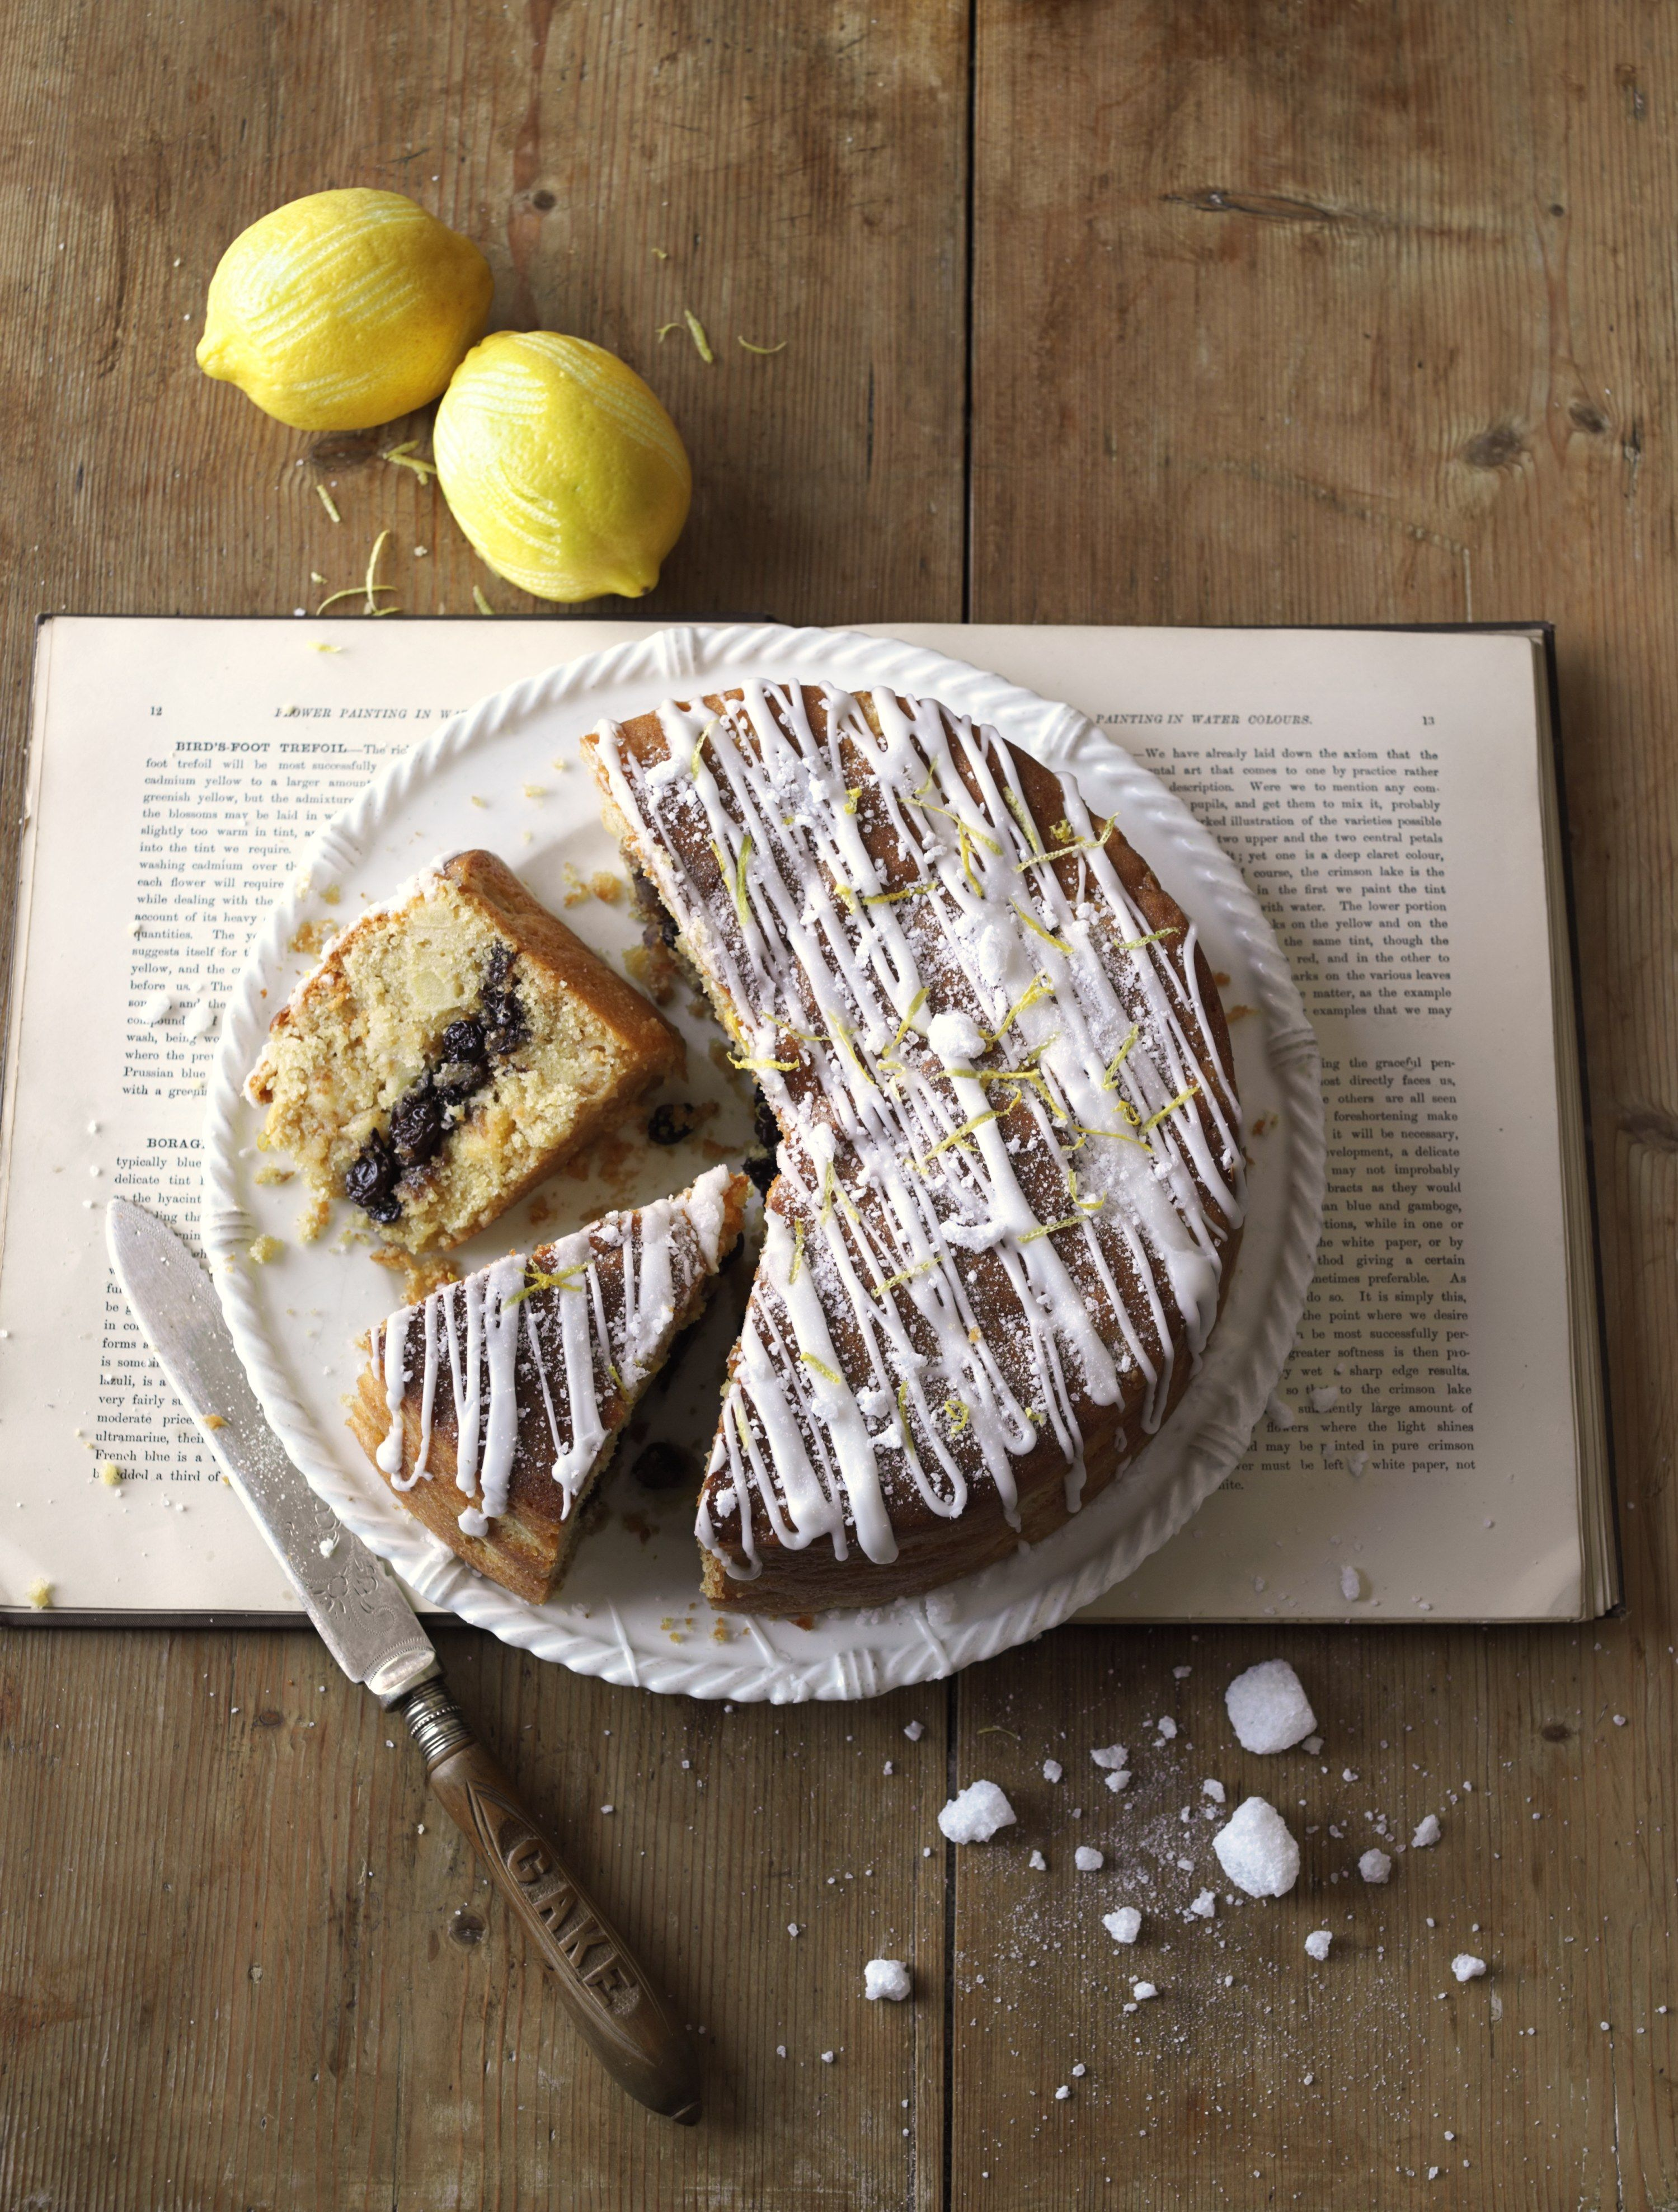 With a middle layer filling of raisins, currants, cinnamon and mixed spices, this cake is literally full of flavour! Plus, it has a zesty, icing sugar top.